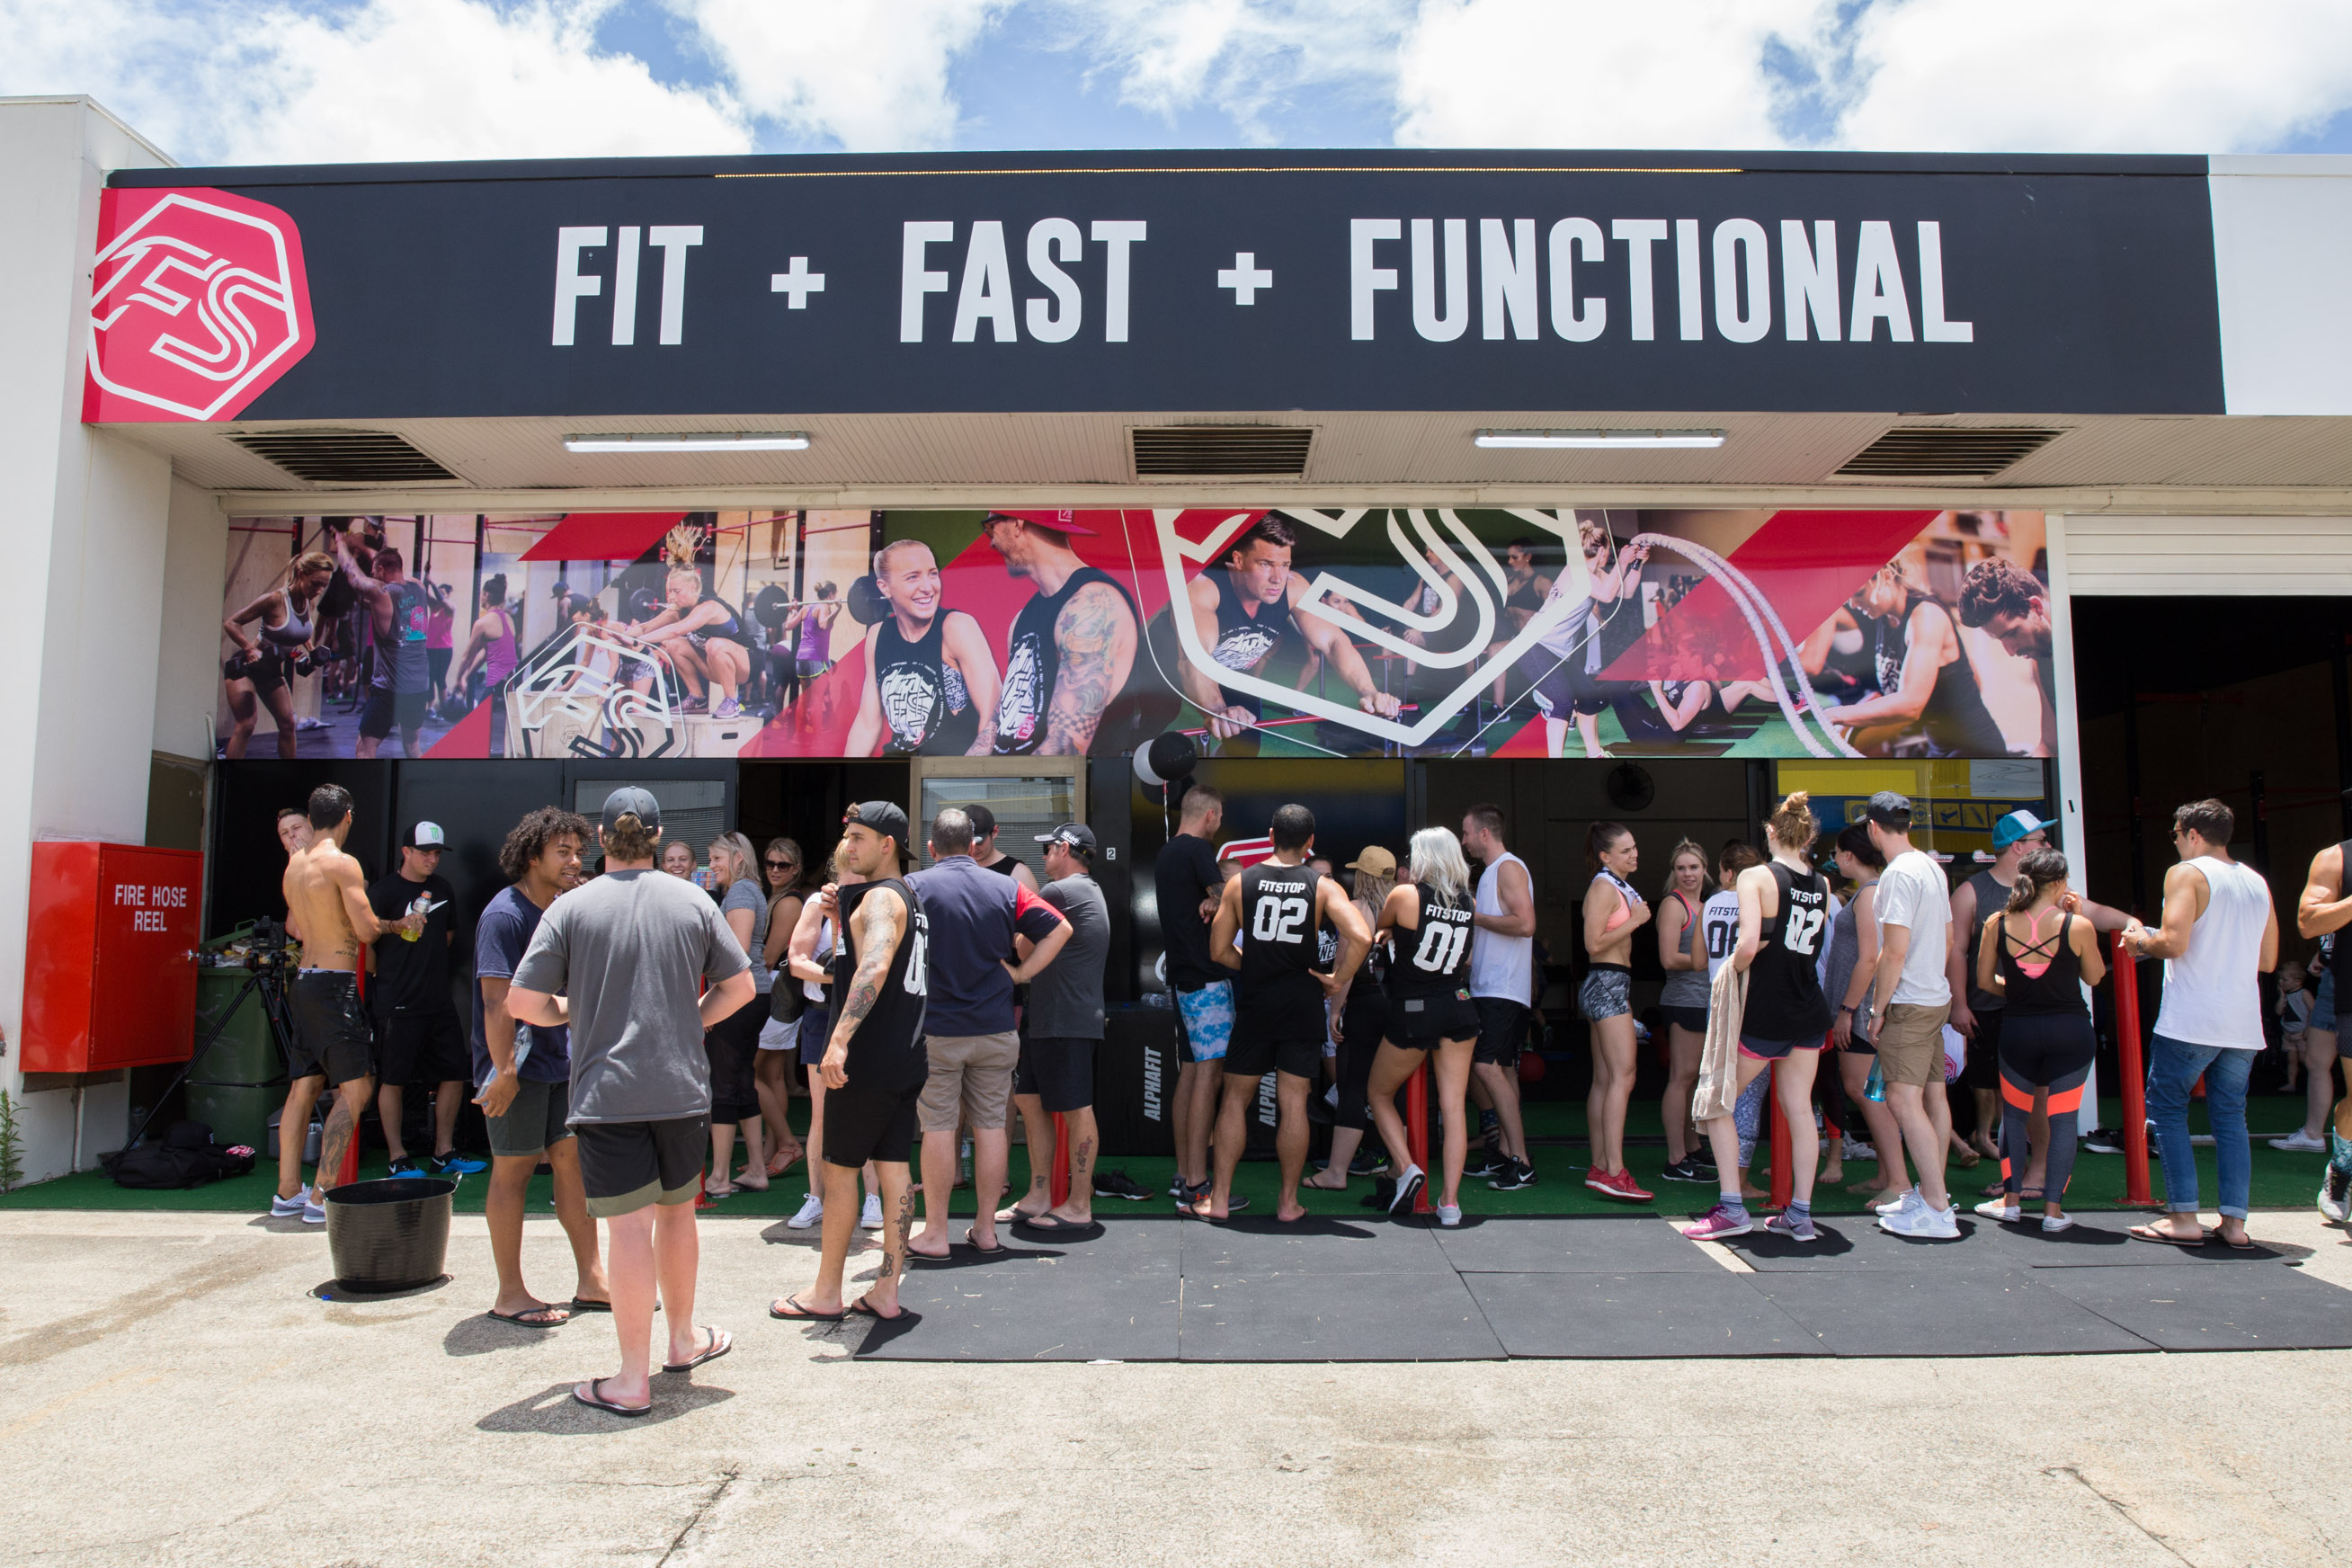 Fitstop West End